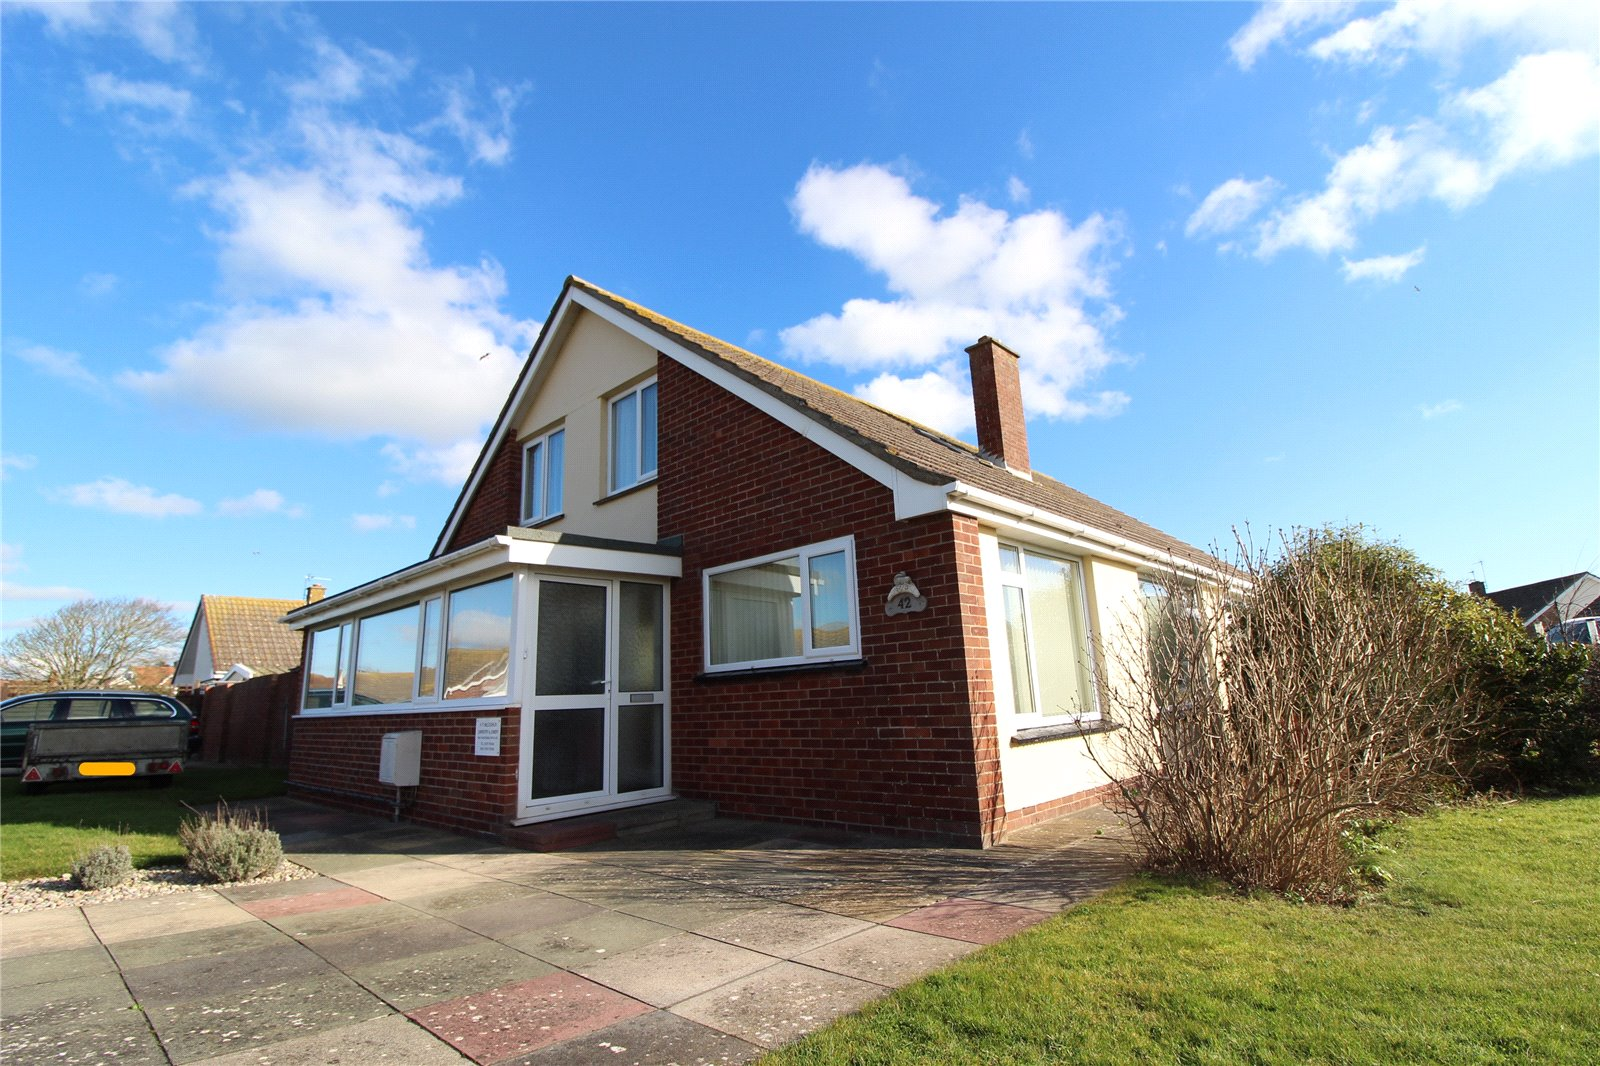 2 Bedrooms Bungalow for sale in Steart Close Burnham on Sea Somerset TA8